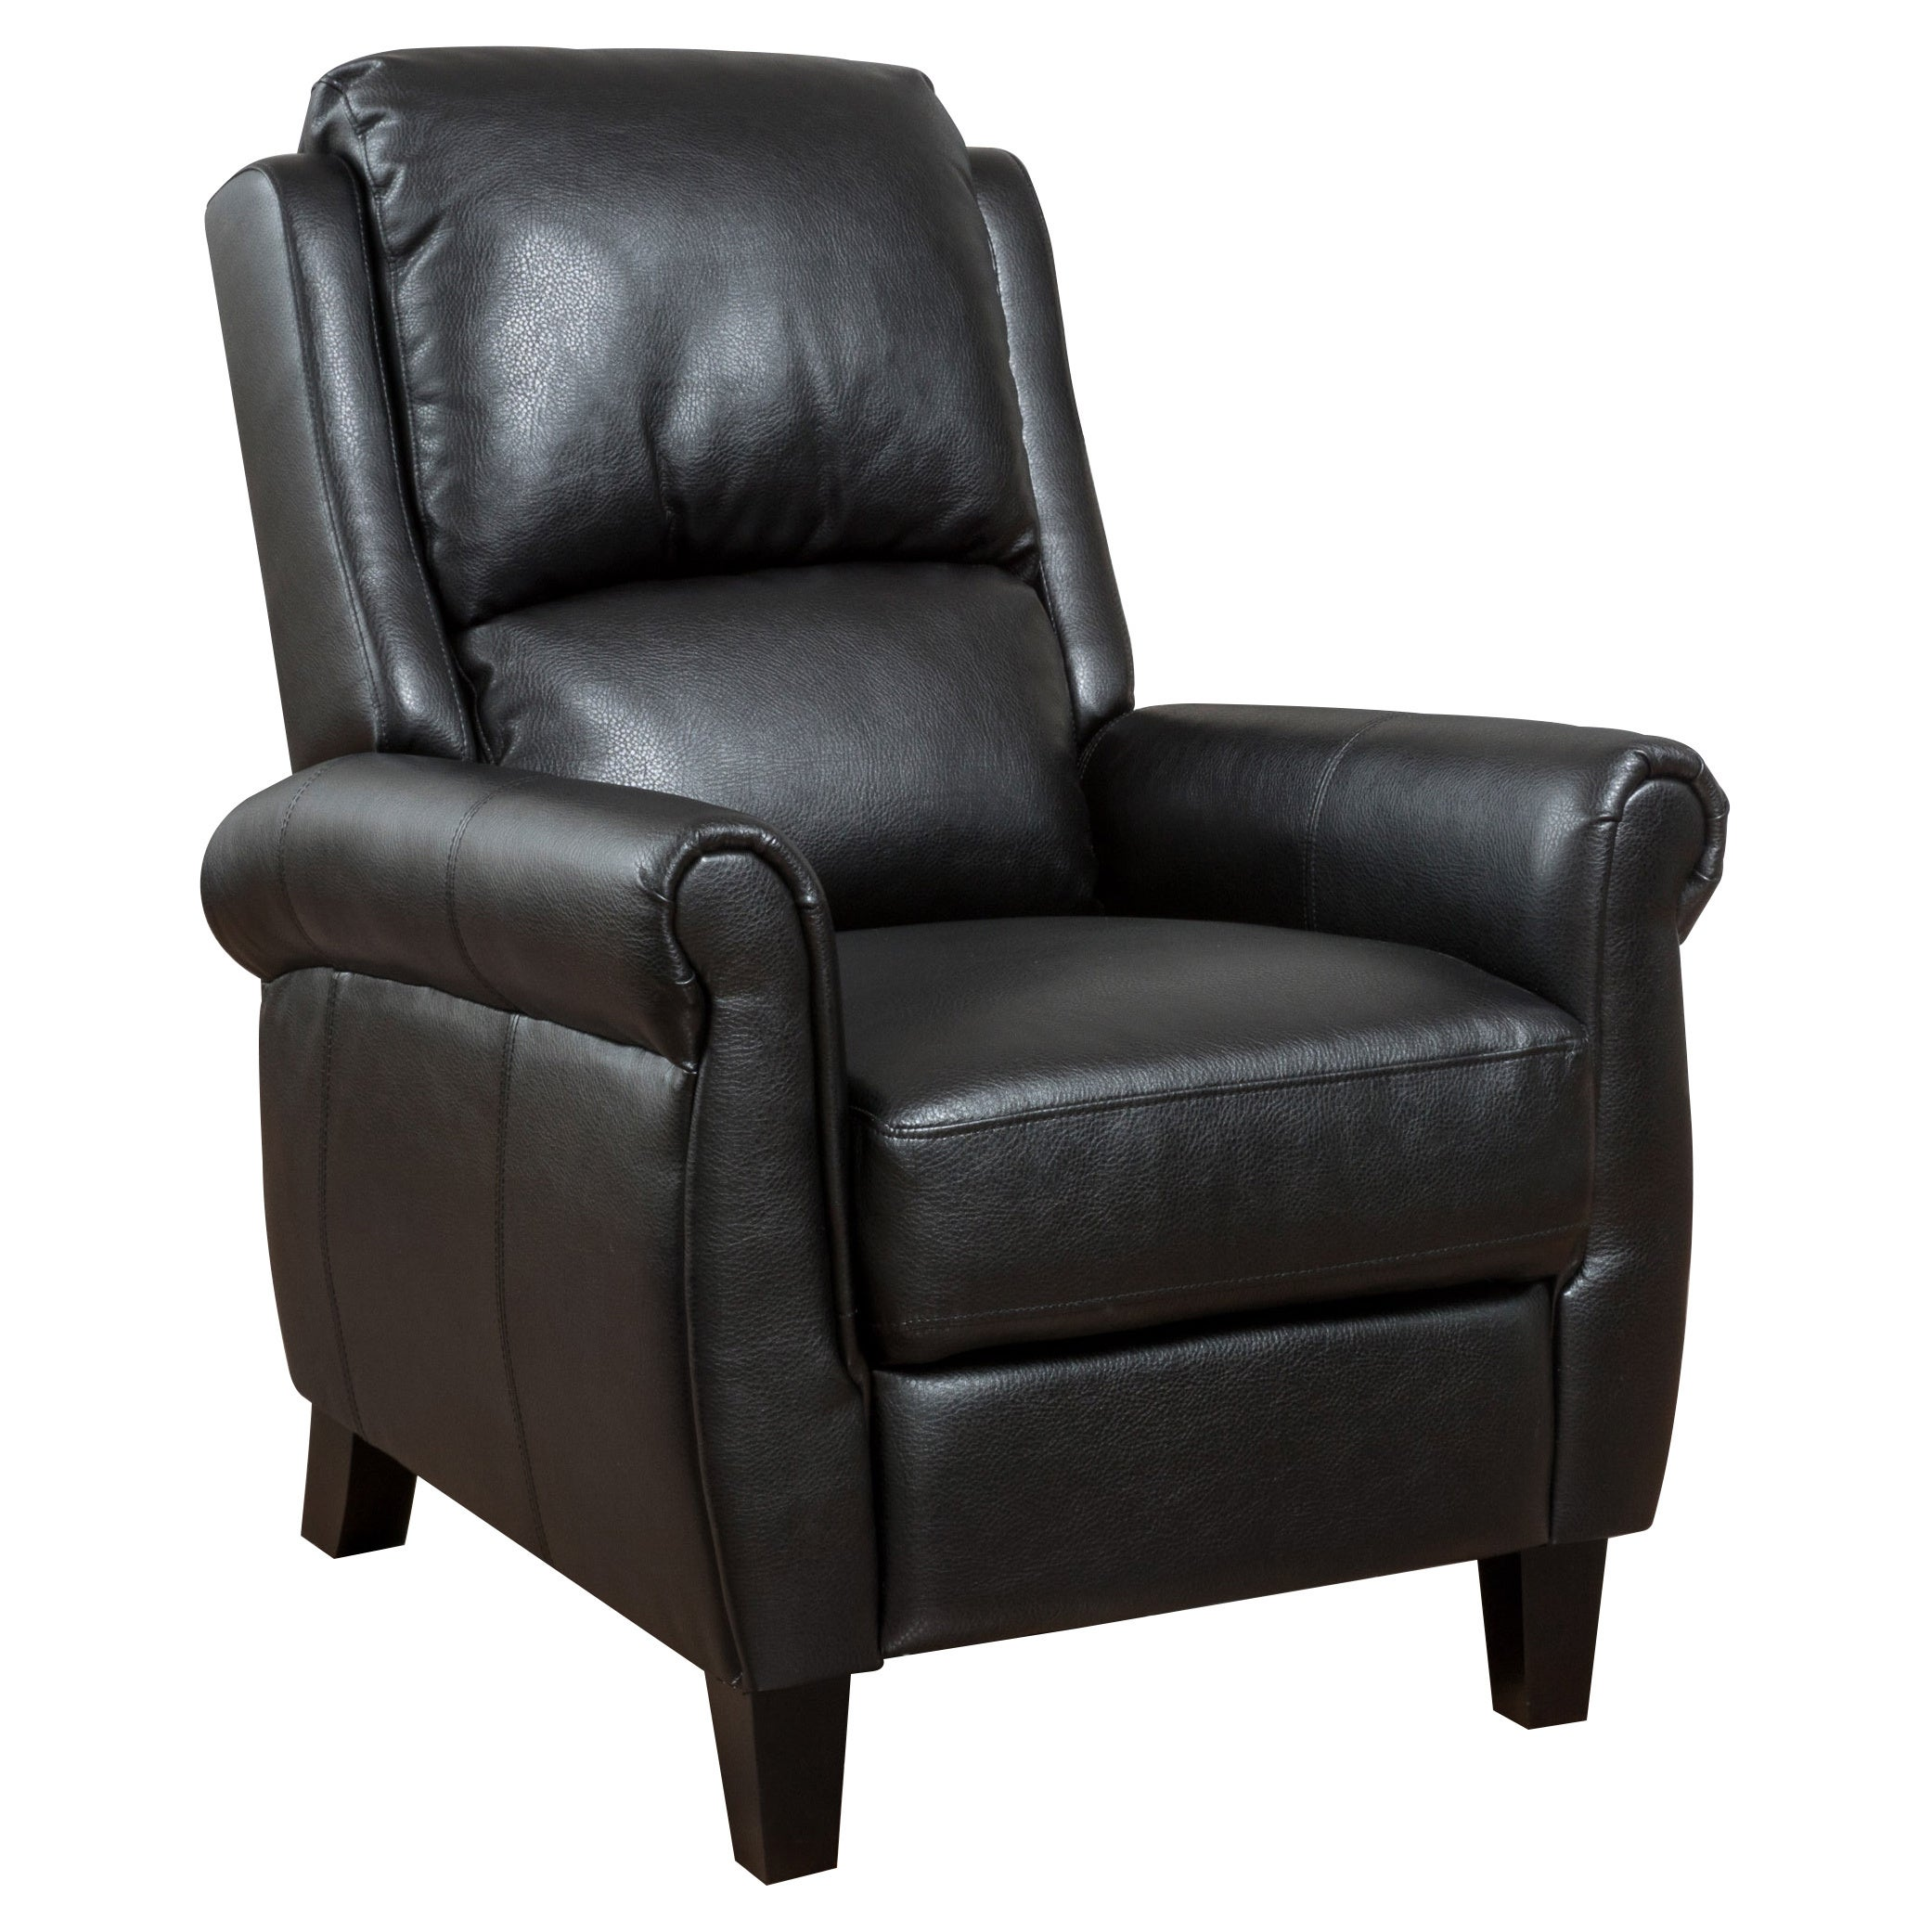 Groovy Haddan Pu Leather Recliner Club Chair By Christopher Knight Home Pabps2019 Chair Design Images Pabps2019Com